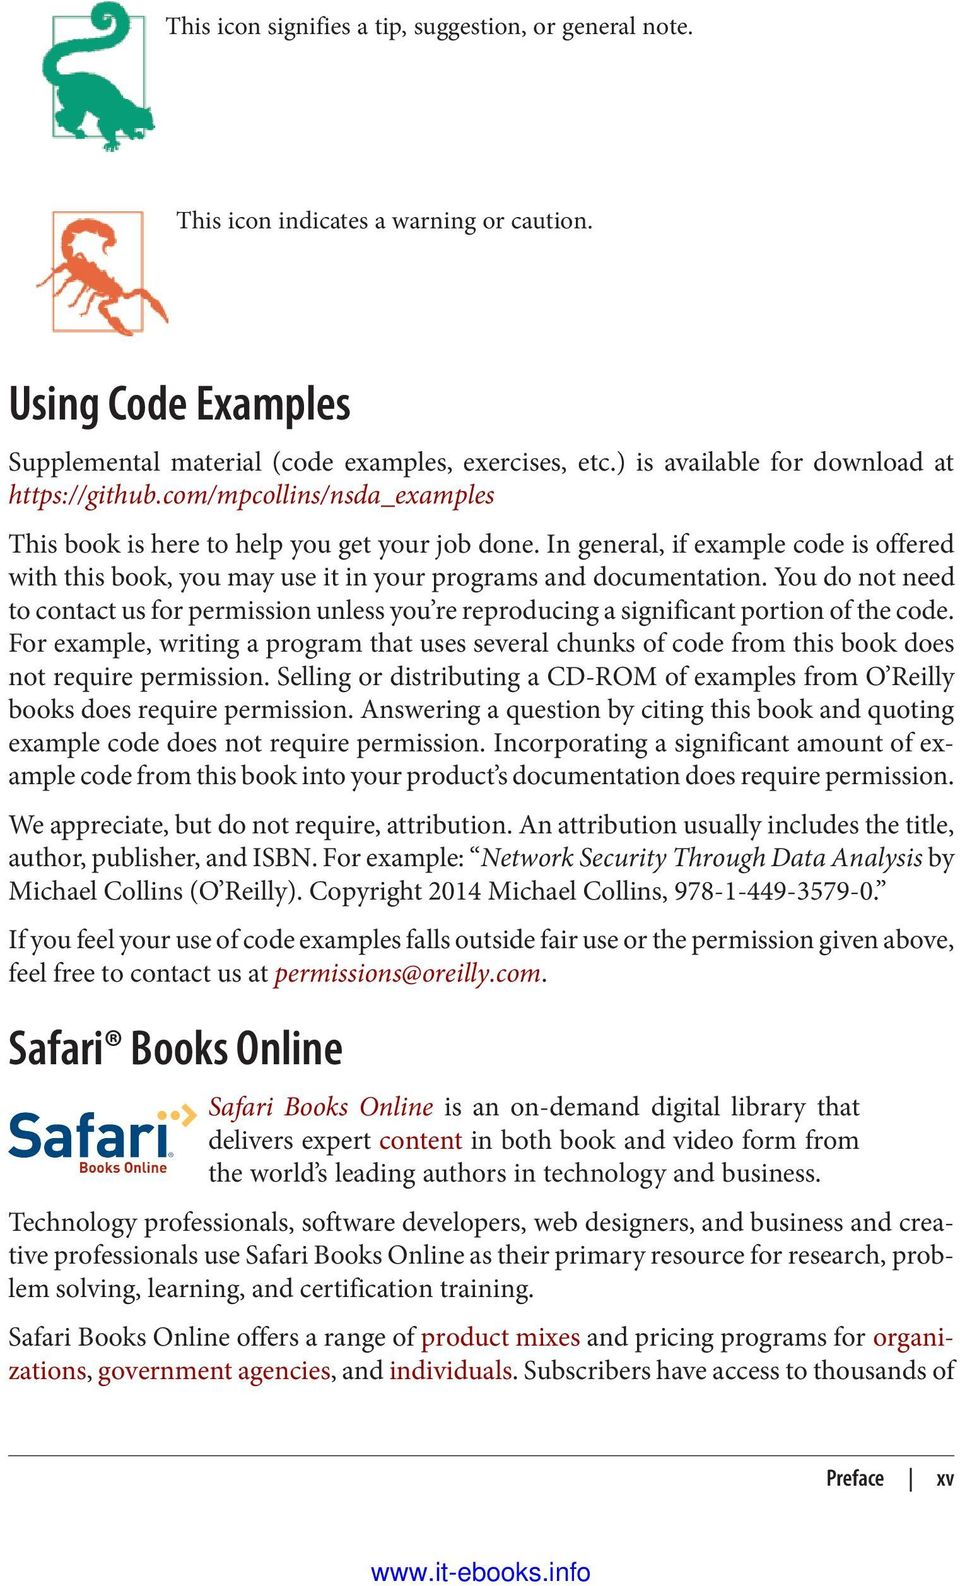 Network security through data analysis pdf in general if example code is offered with this book you may use it fandeluxe Image collections